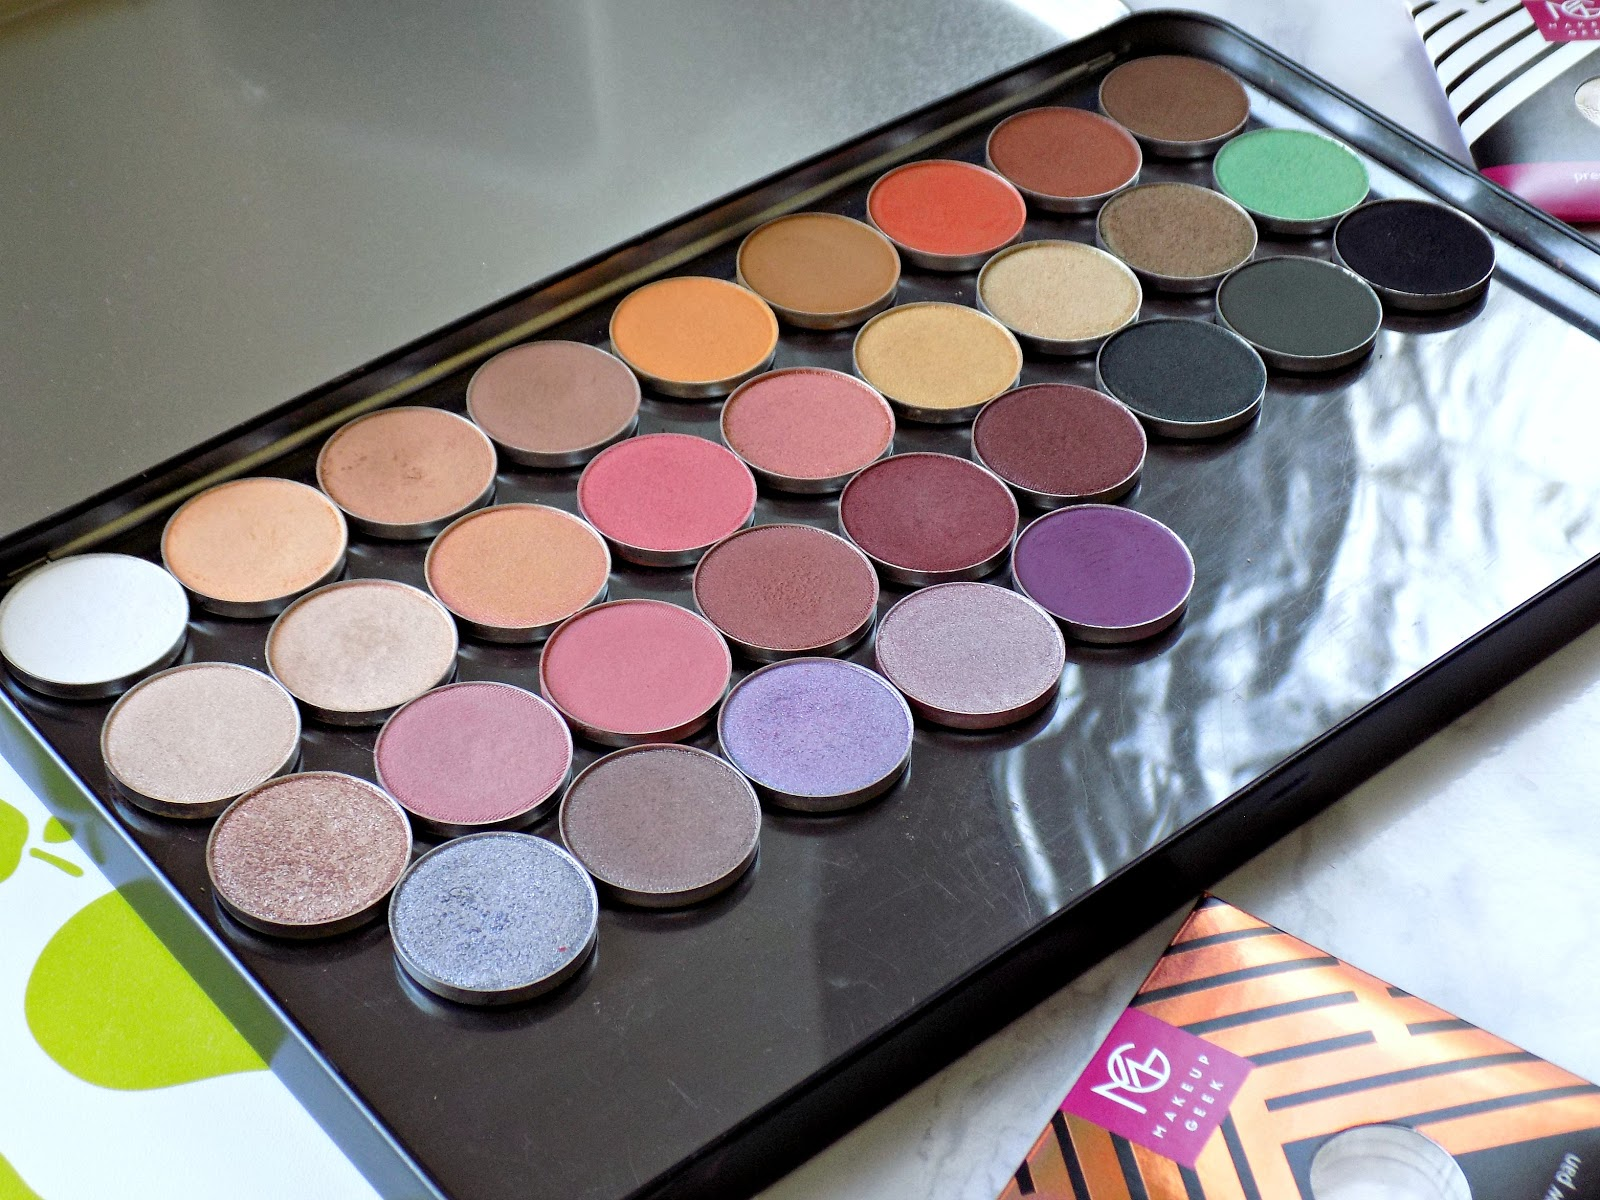 Makeup Geek eyeshadows, my collection